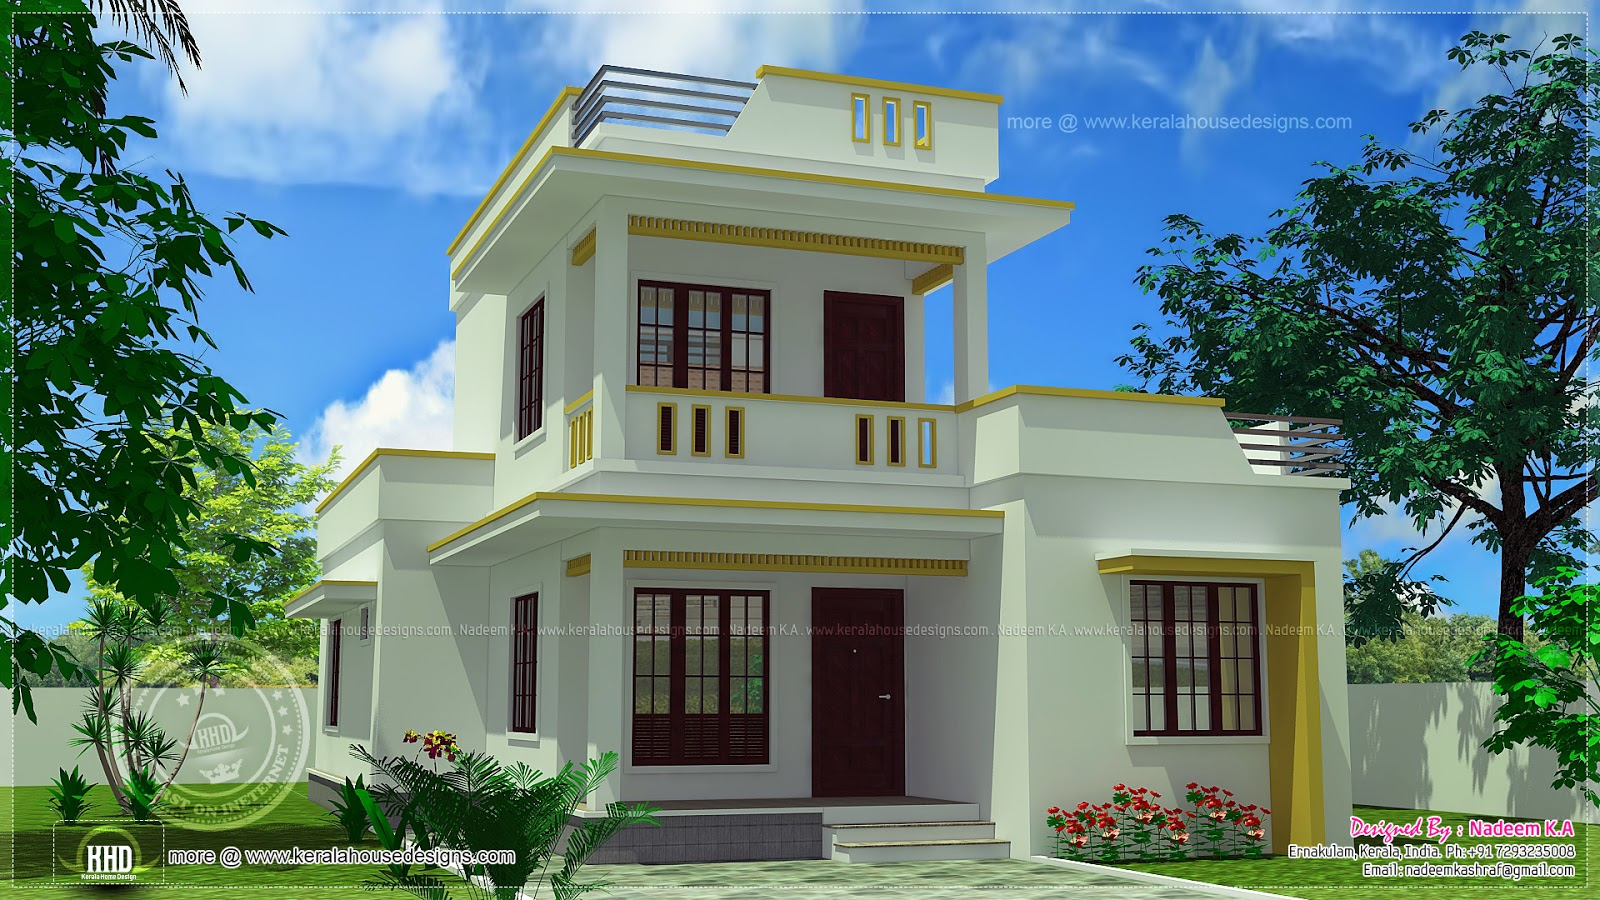 August 2013 kerala home design and floor plans Simple home designs photos